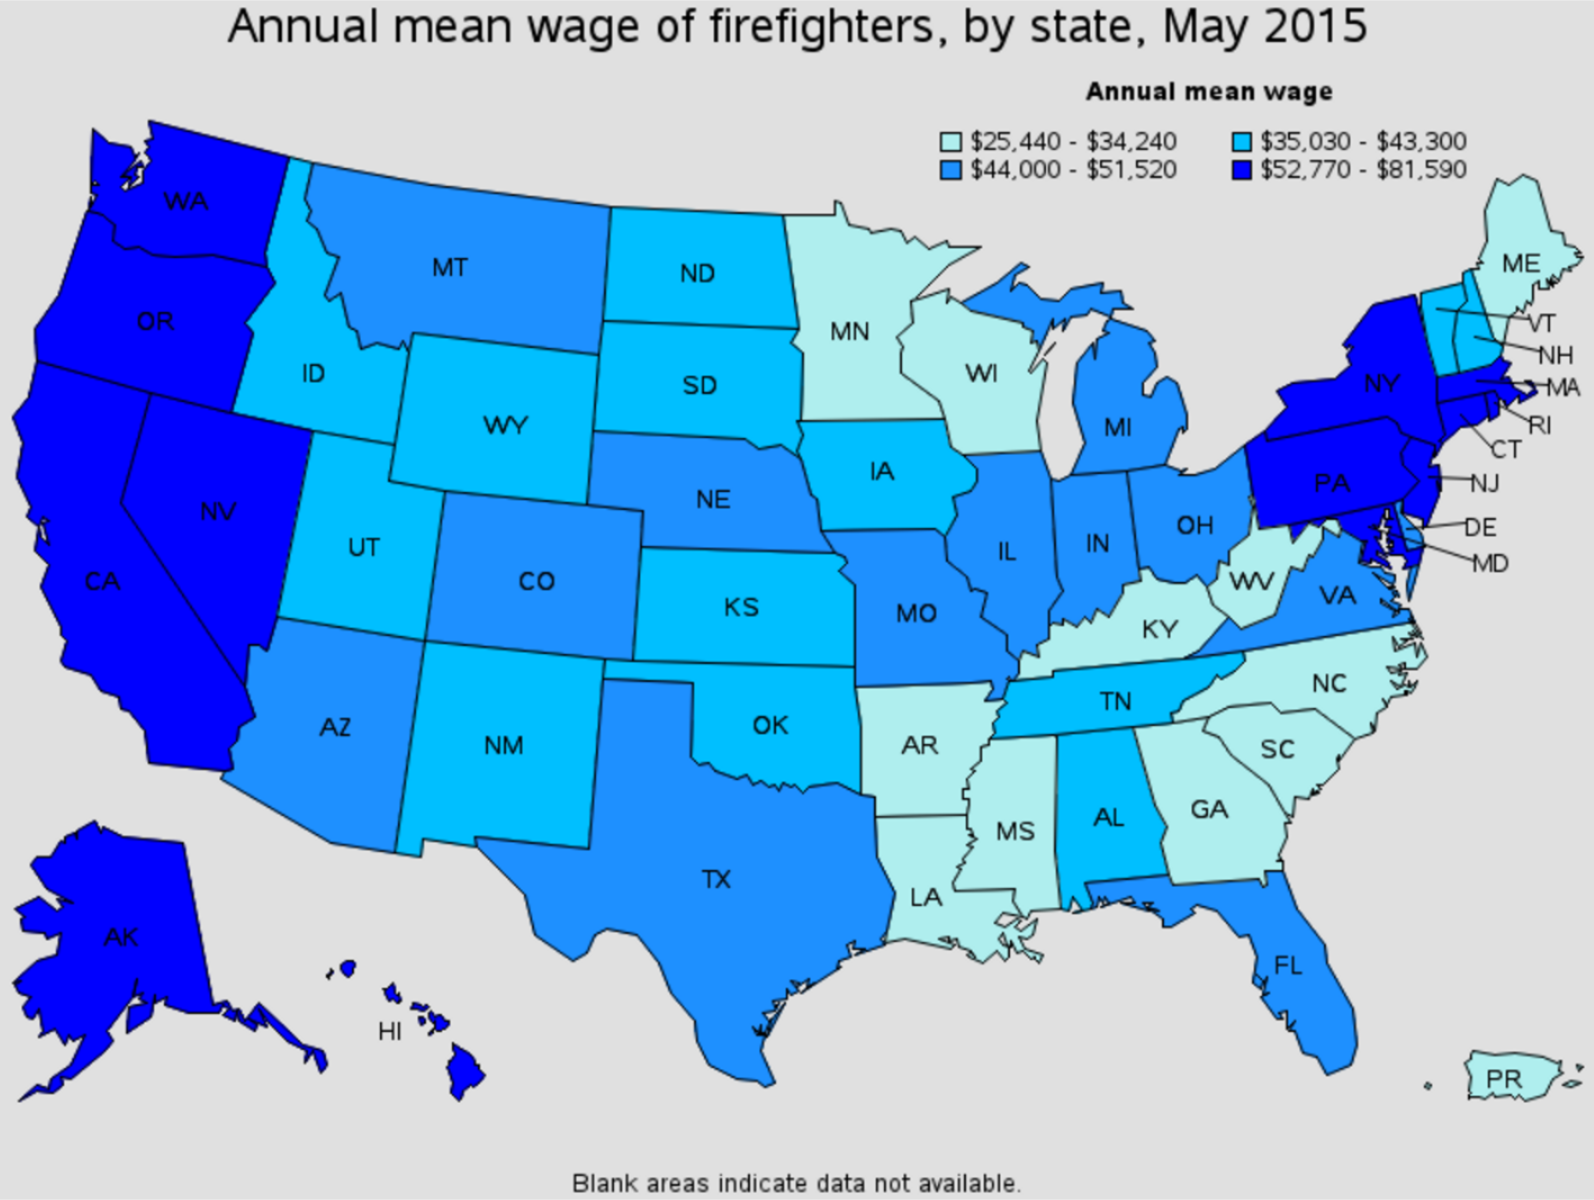 firefighter average salary by state Vernon Alabama